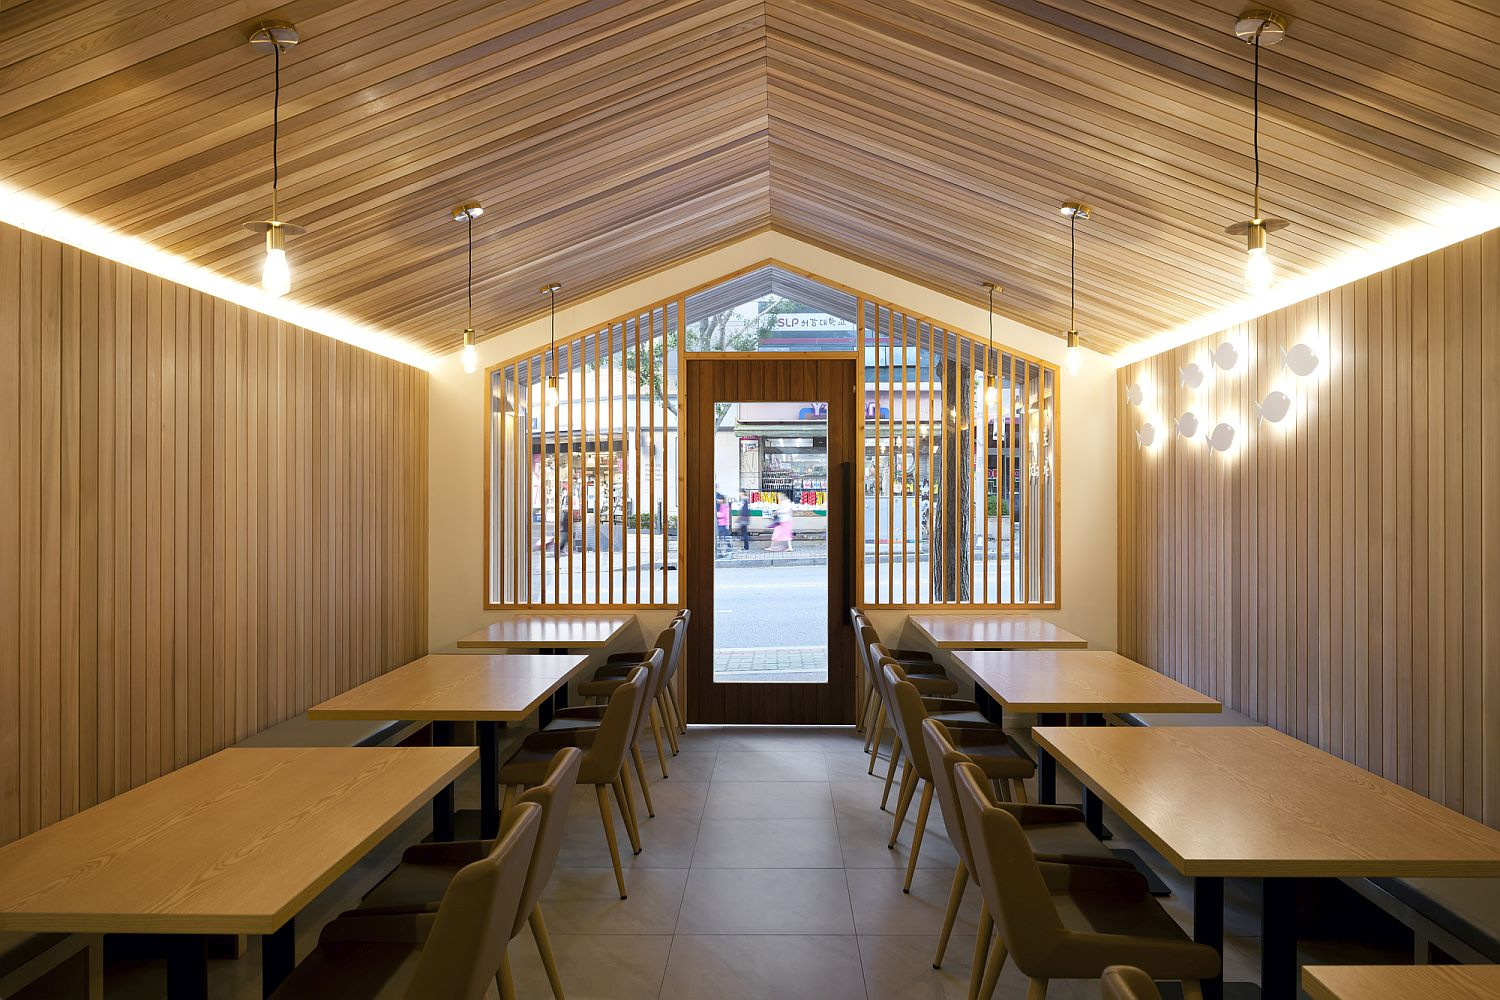 Urban Cabin Small Space Conscious Restaurant With Cozy Modern Ambiance